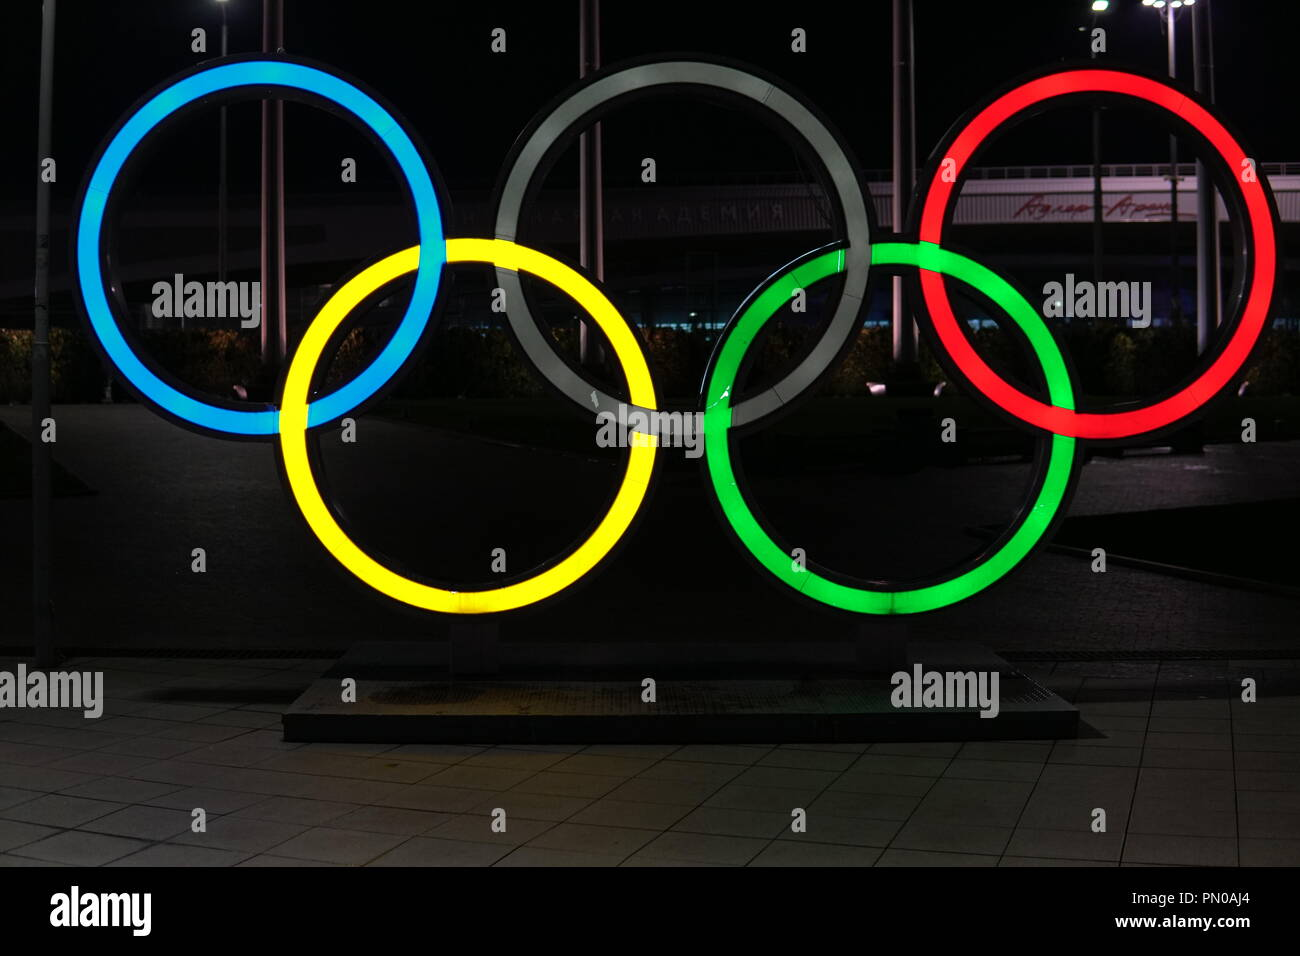 Olympics rings symbol competition in Sochi z - Stock Image